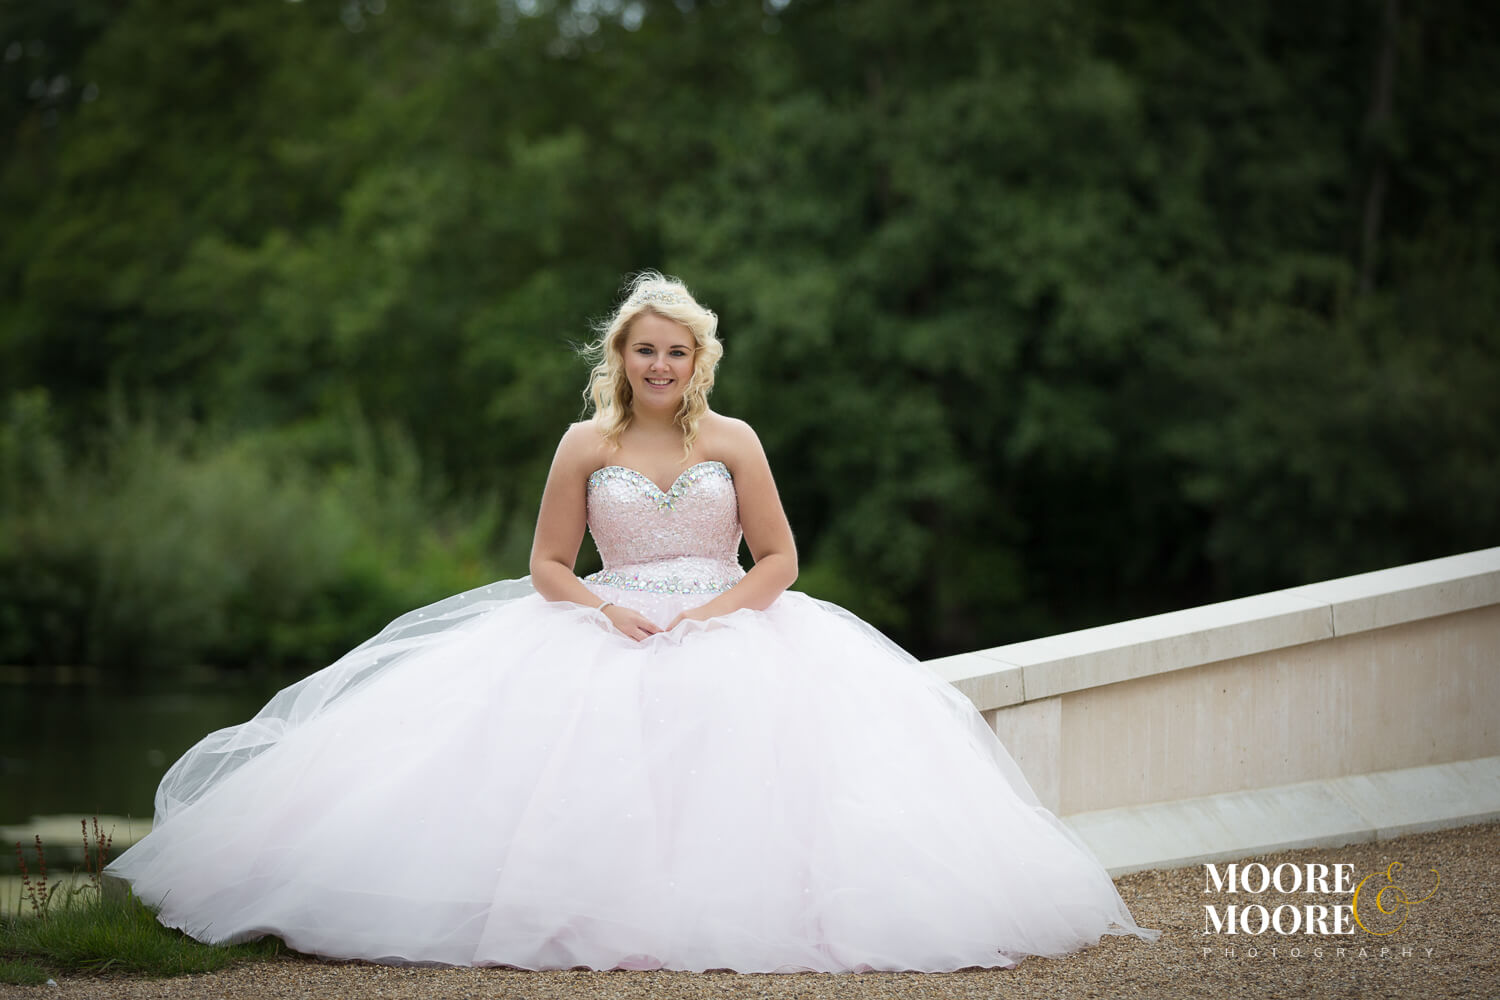 Fairytale style prom-year-photography-by-moore-moore-photography-hampshire